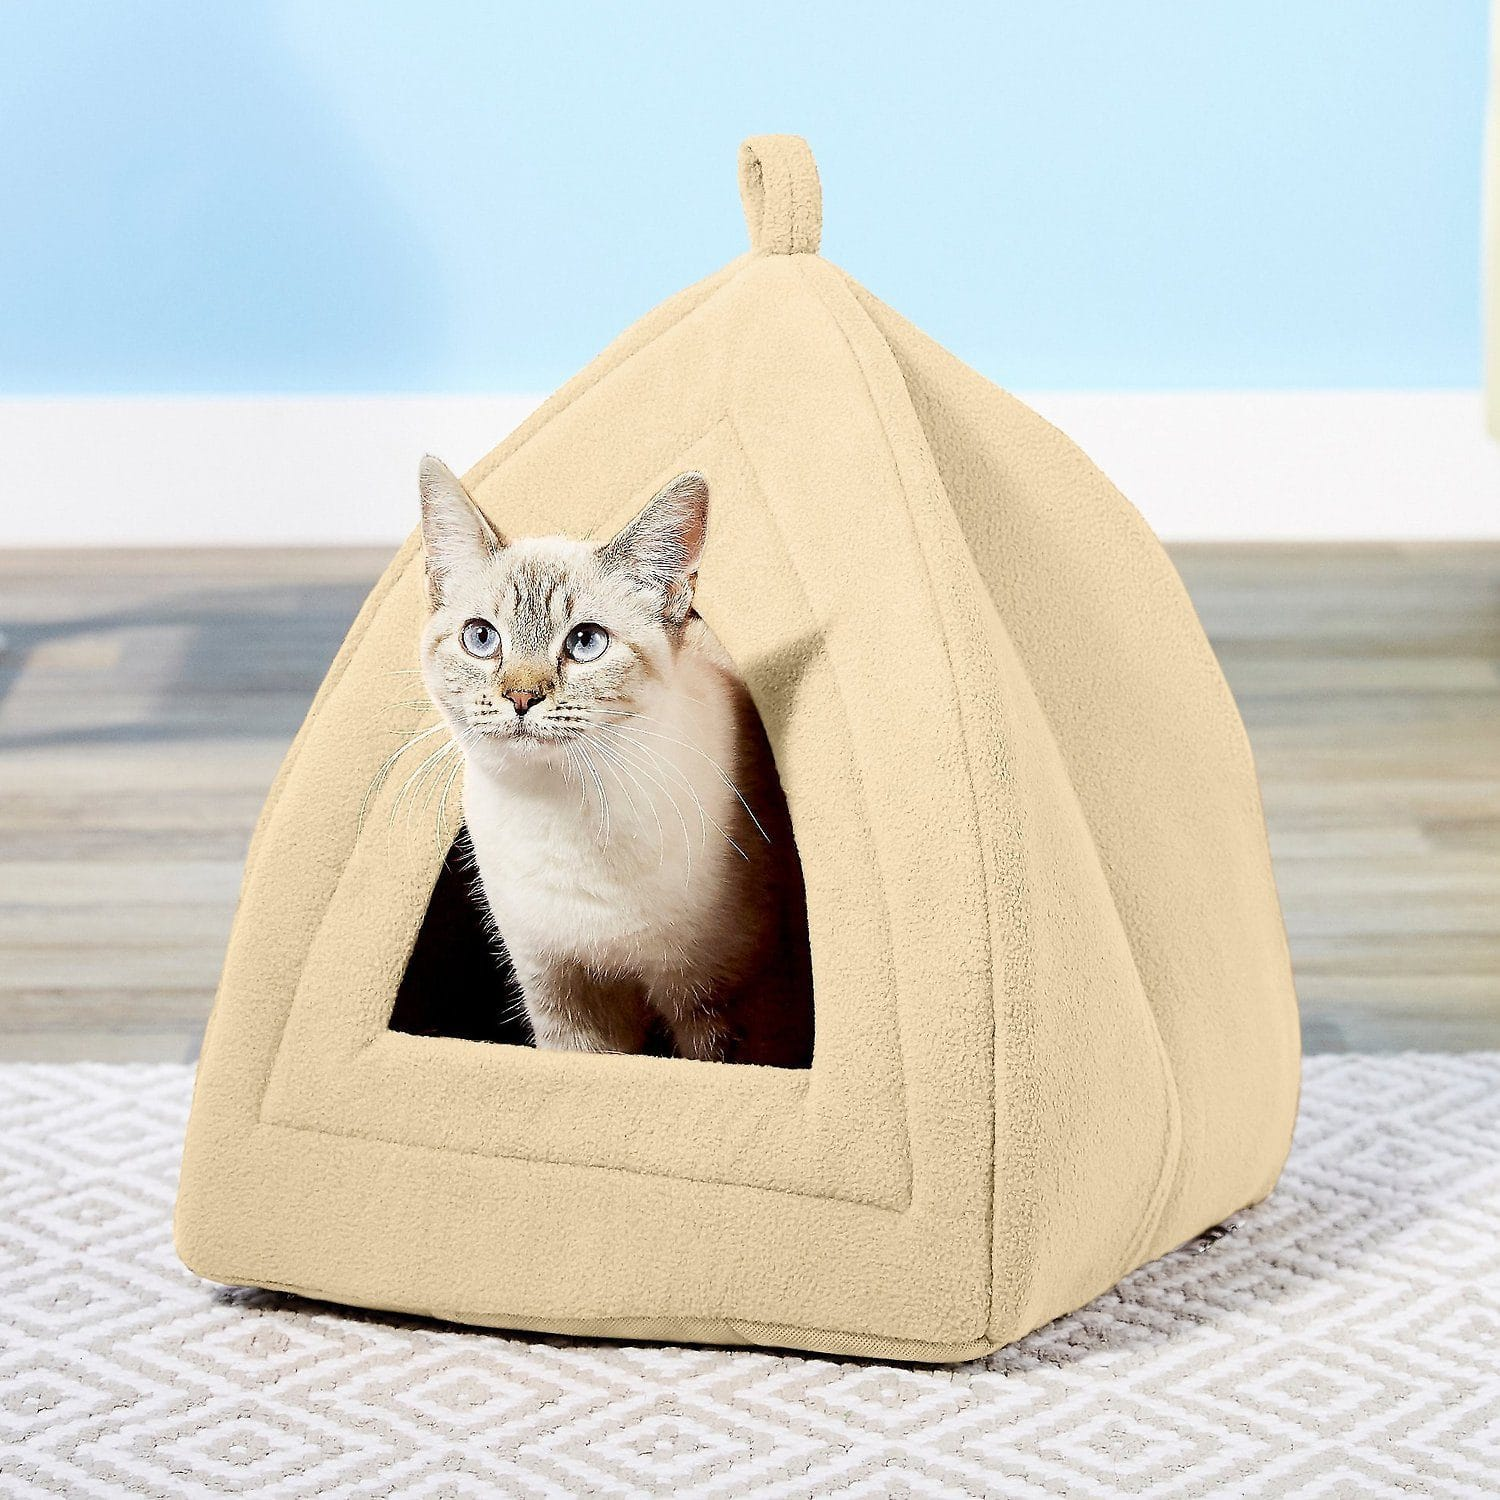 cat in Petmaker Cozy Kitty Tent Igloo Plush Cat Bed